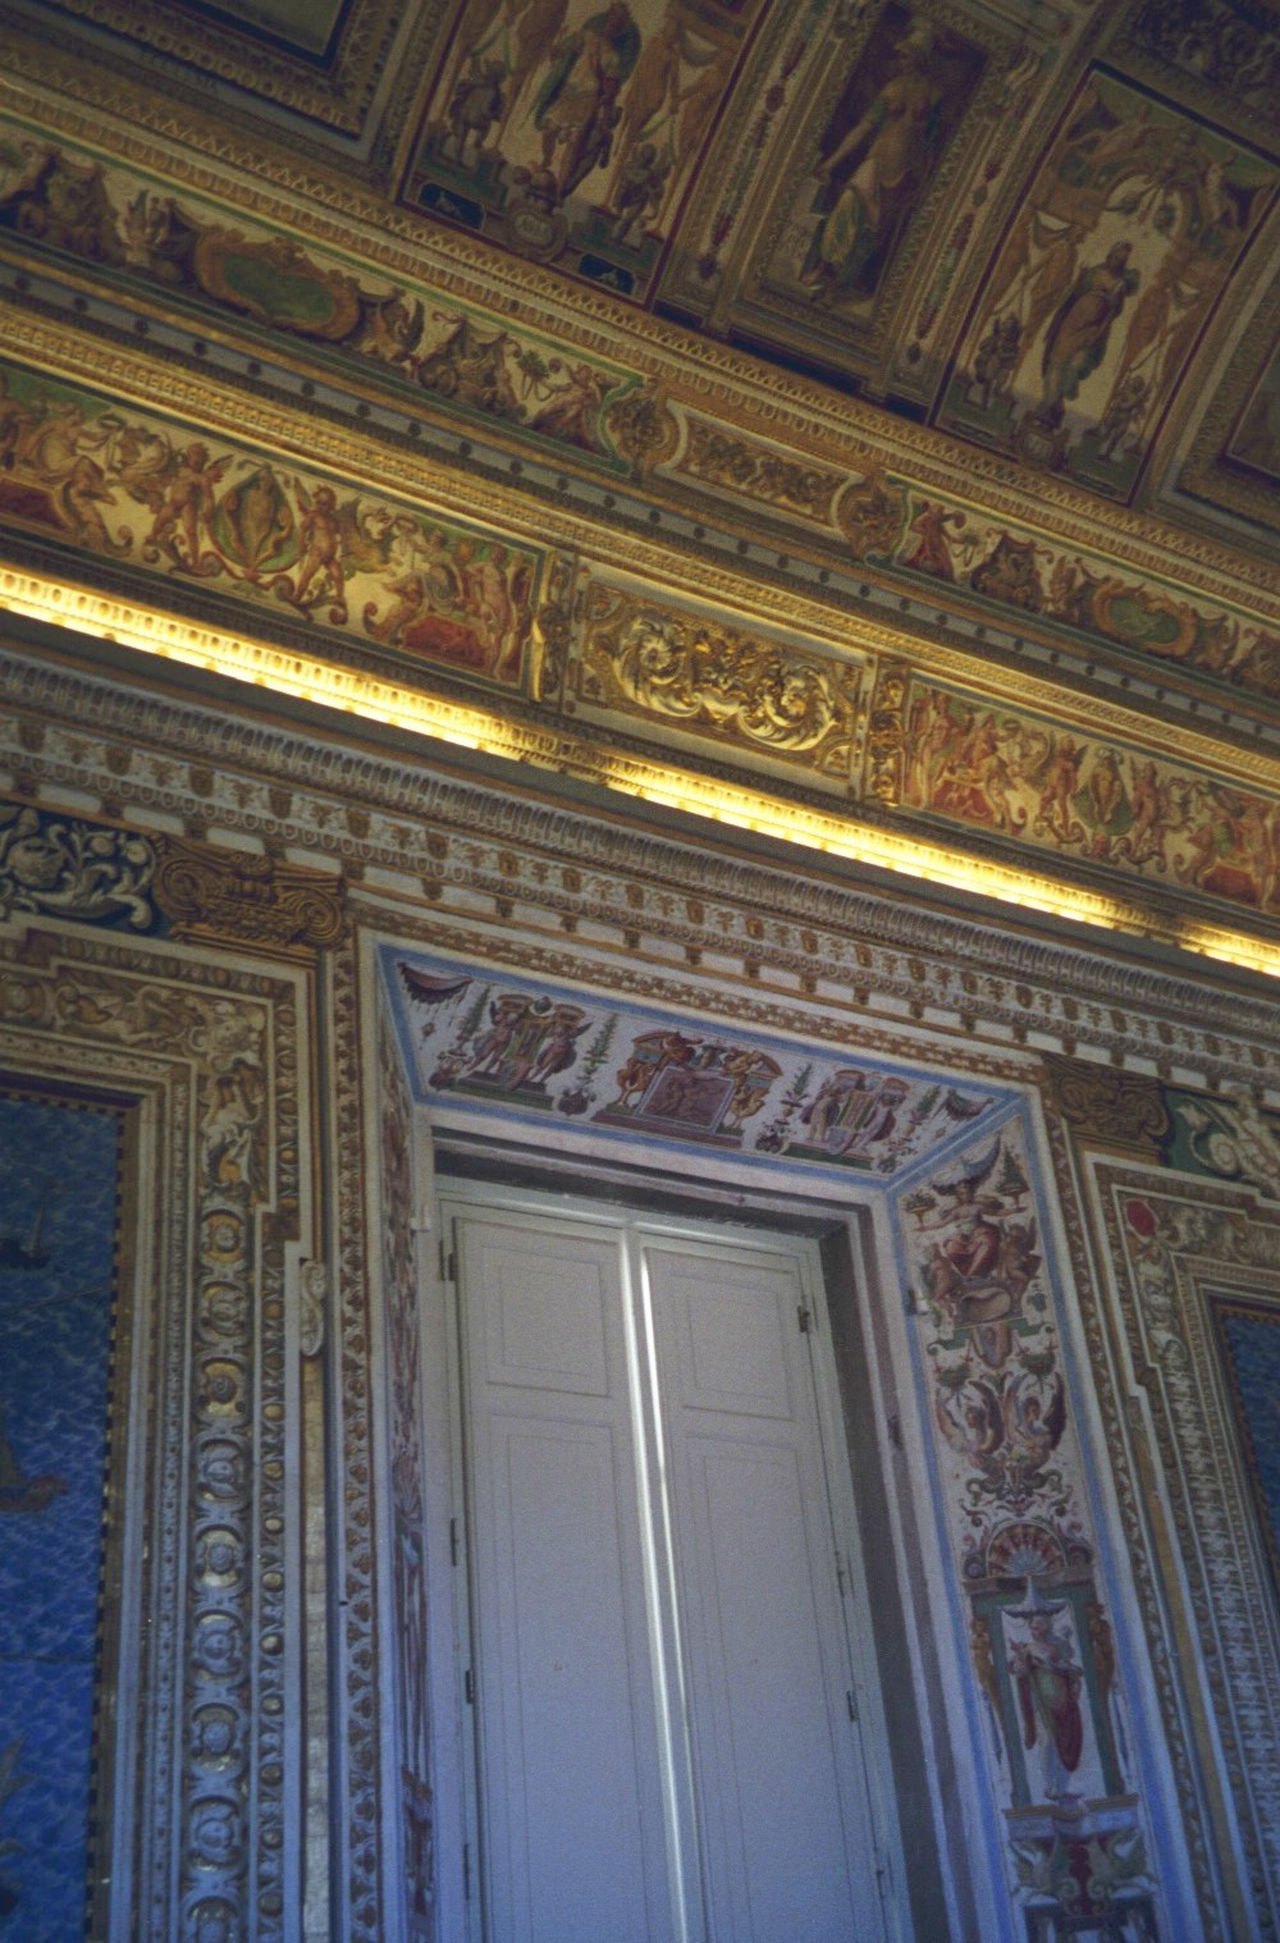 18th Century 35mm Film Analog Analogue Photography Architecture Built Structure Classic Day Door Doors Embellishments Gold Indoors  Interior Design Italy No People Rococo Rome Royal Vatican